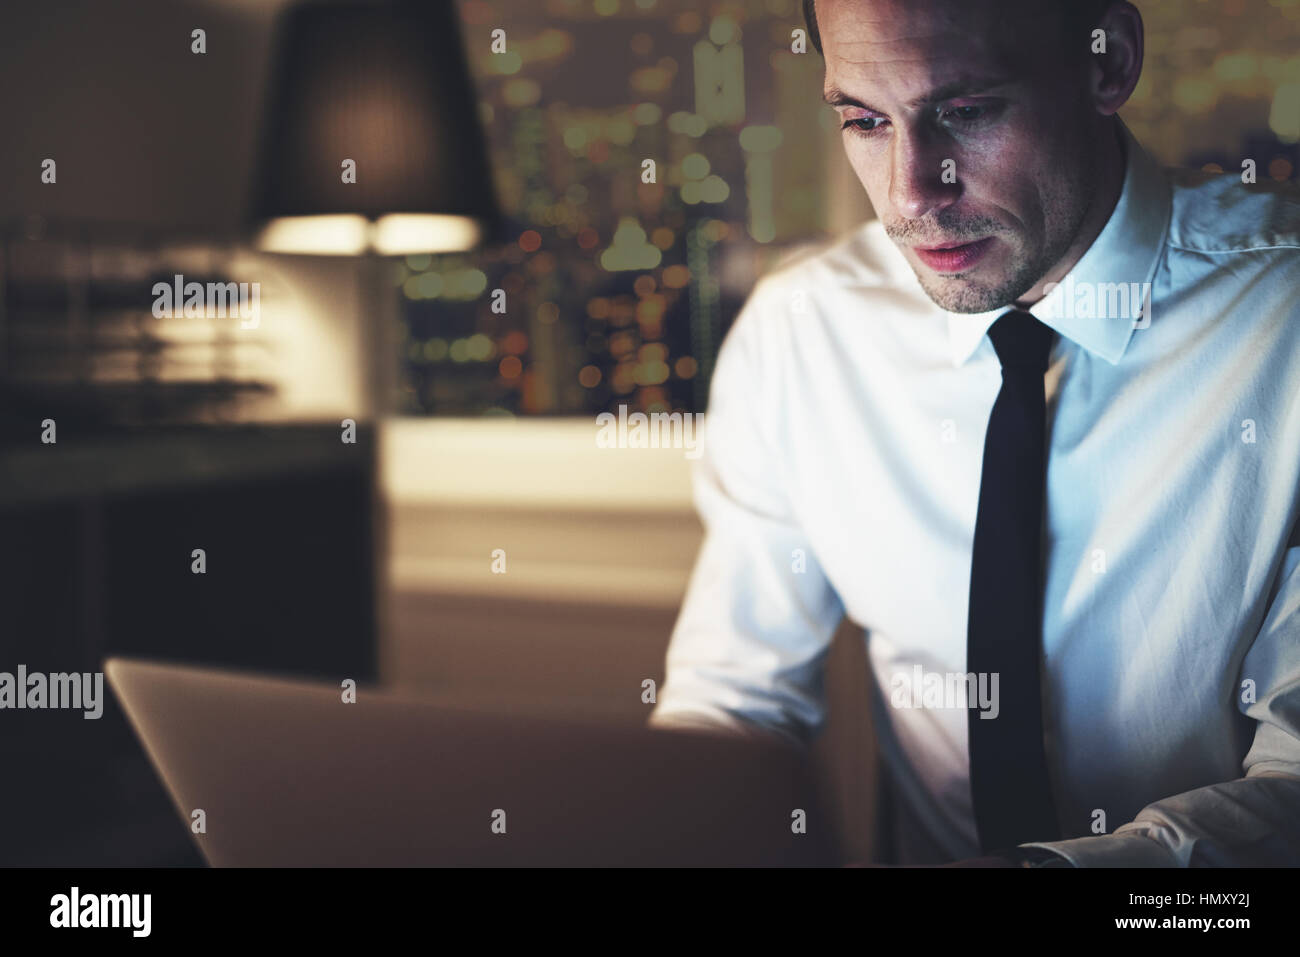 Serious businessman working on laptop at night sitting in office looking concentrated - Stock Image